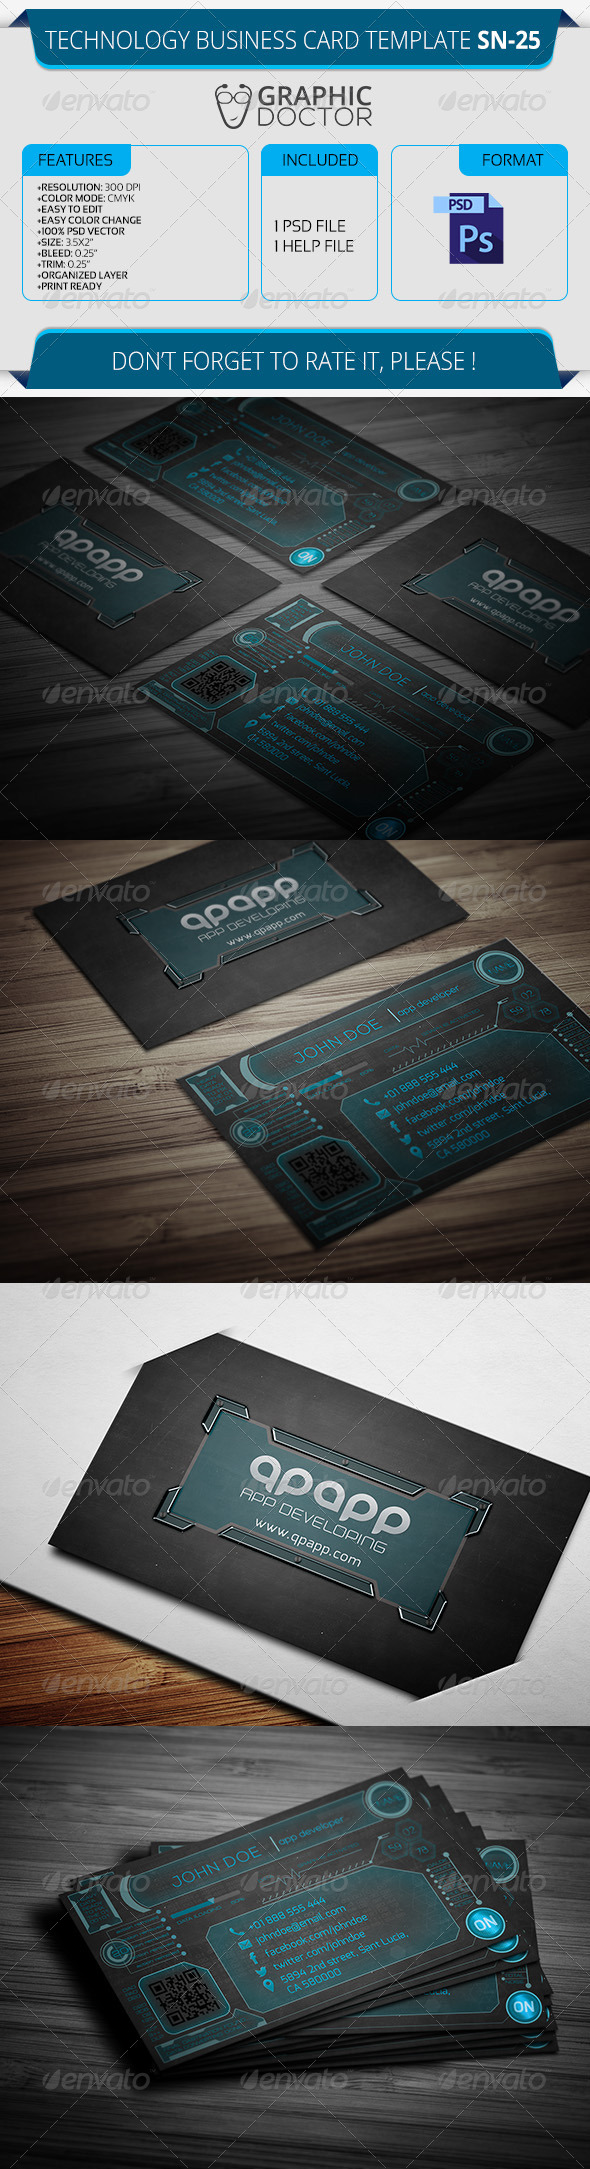 Technology Business Card Template SN-25 - Real Objects Business Cards